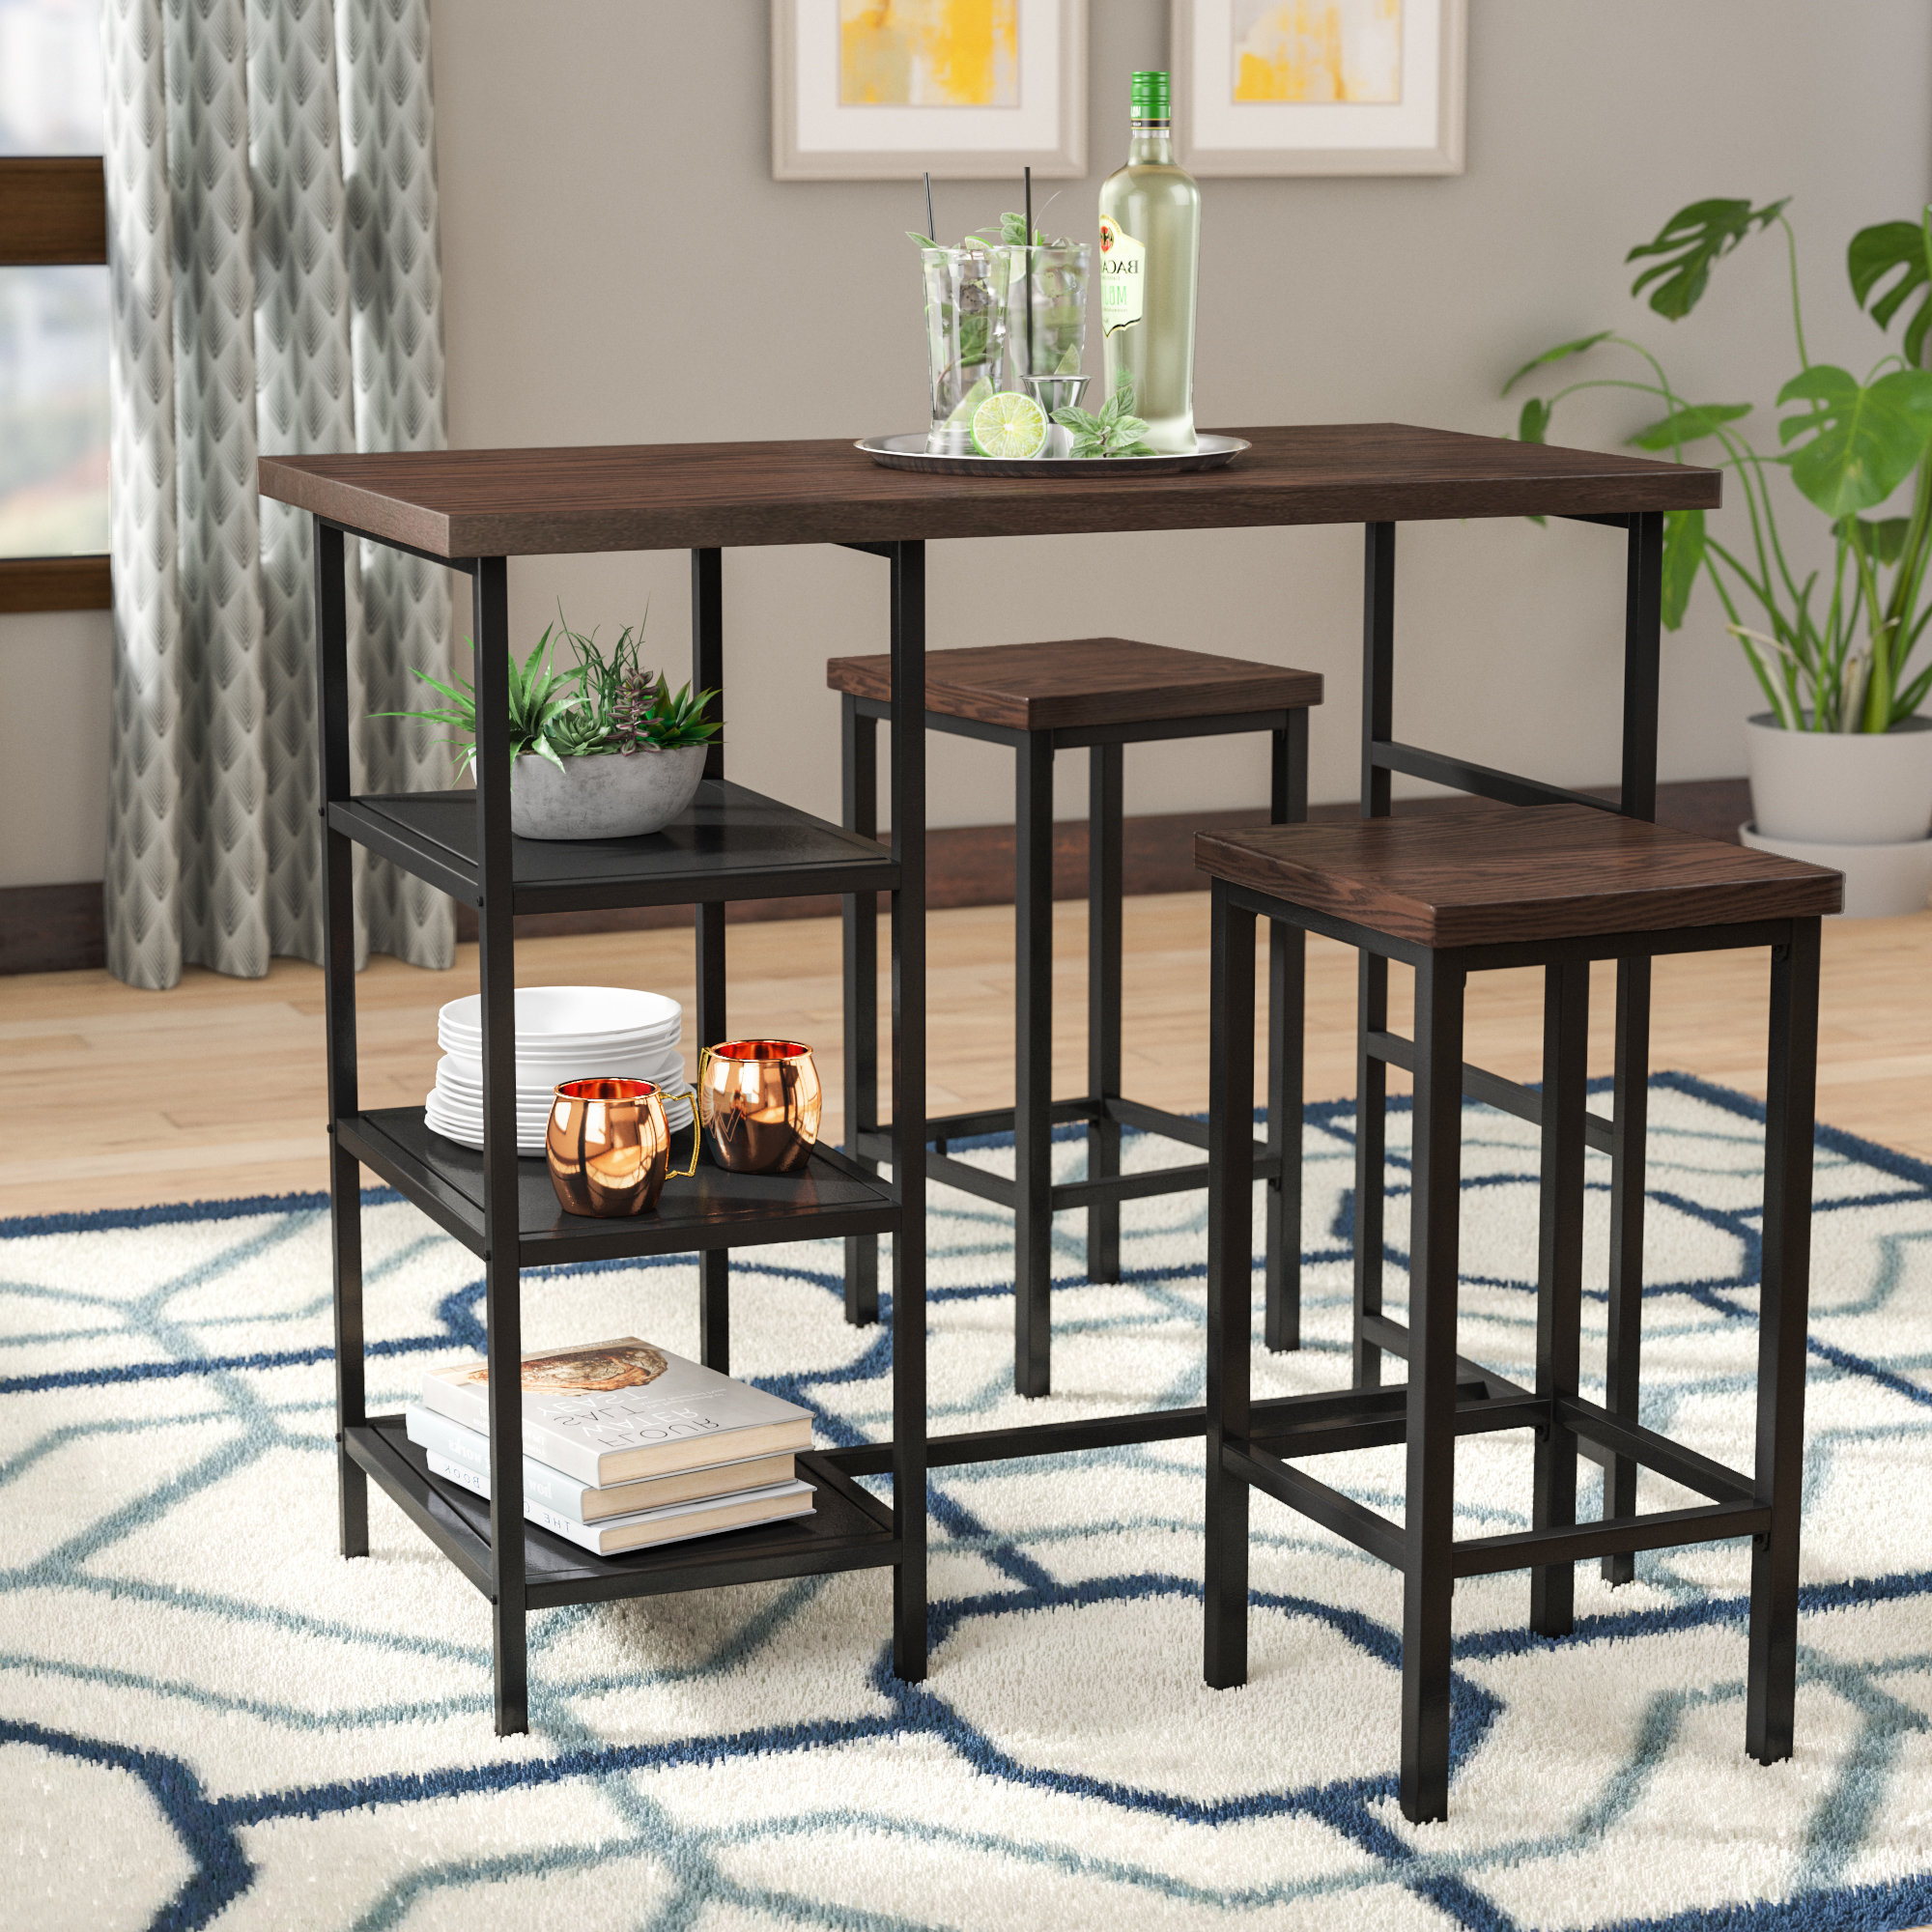 Wayfair With Regard To Preferred West Hill Family Table 3 Piece Dining Sets (View 5 of 20)